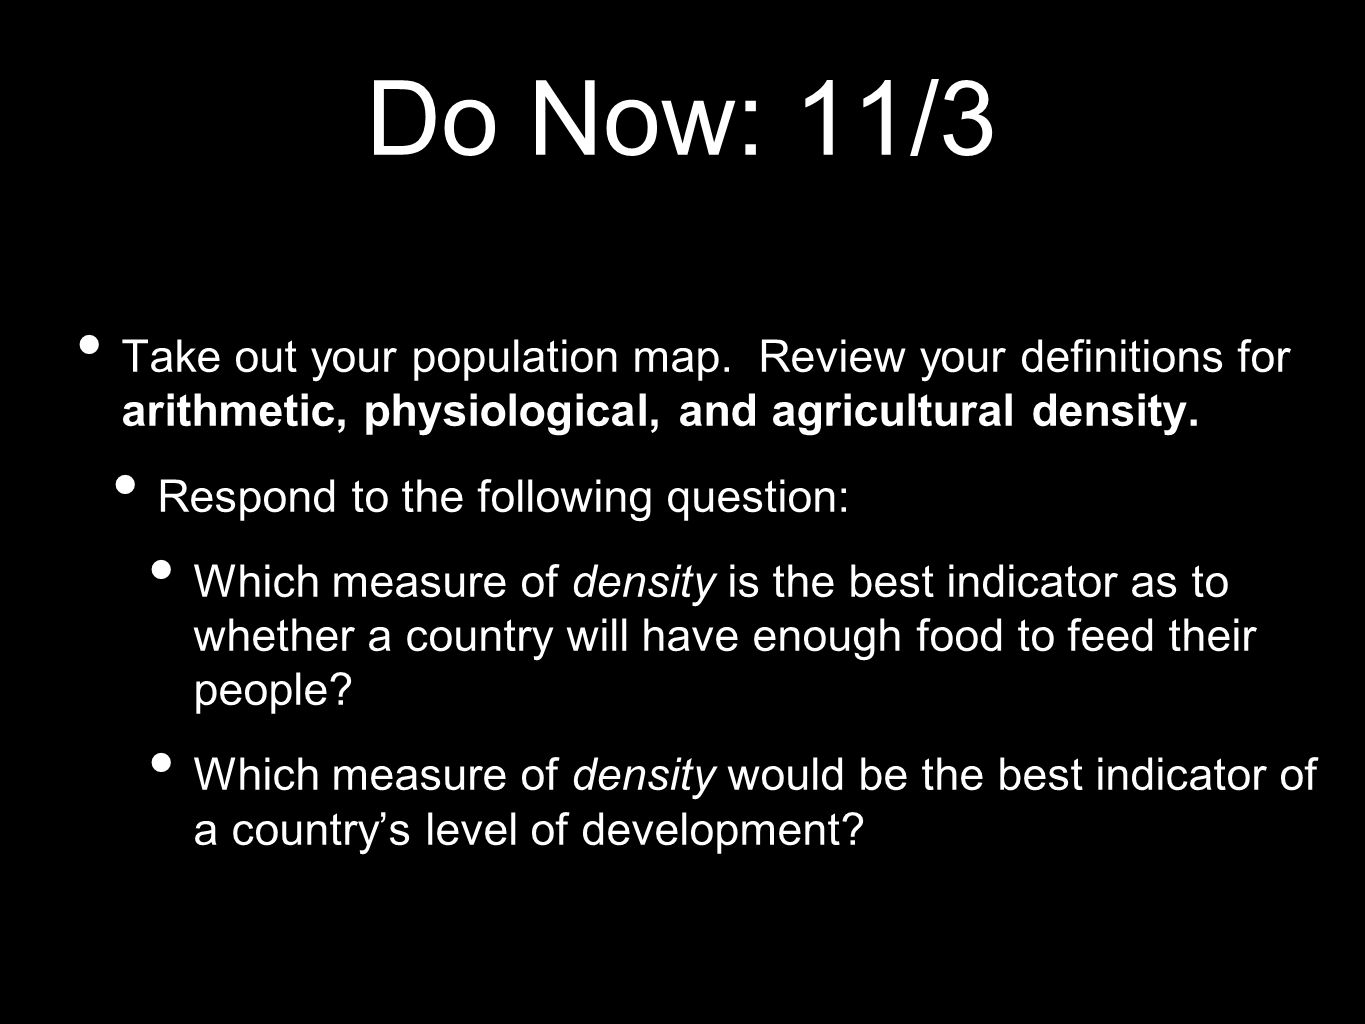 Do Now: 11/3 Take out your population map. Review your definitions for arithmetic, physiological, and agricultural density.